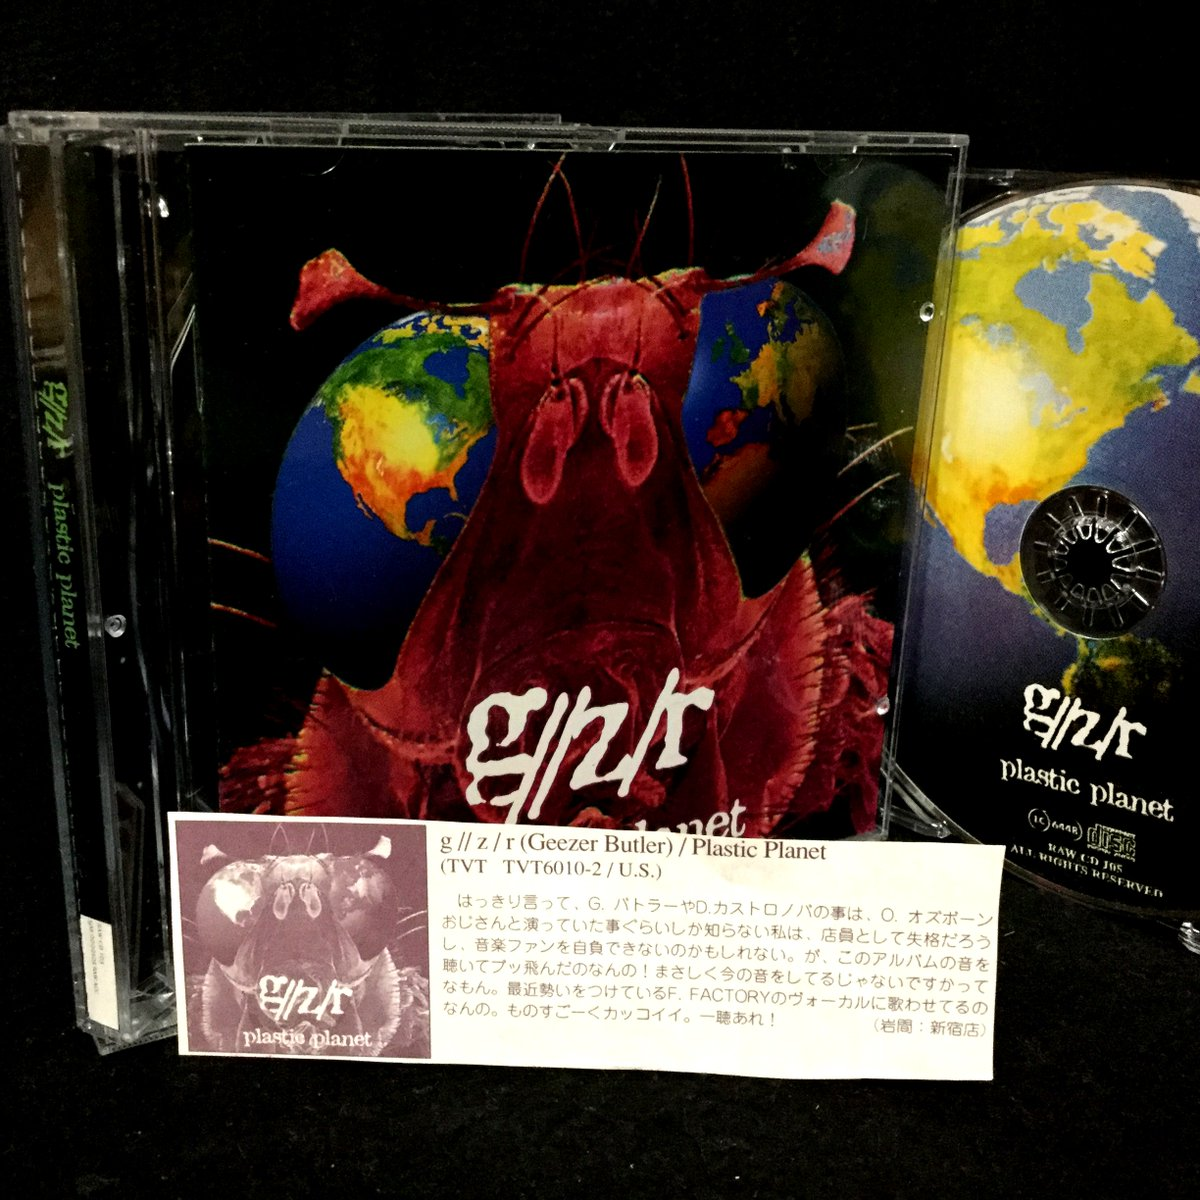 25th ANNIVERSARY!!!!!!!!!!!!!!!!!!!!!!!!!!!!!!!  g//z/r(Geezer Butler) / Plastic Planet [October 26th, 1995 MA / October 1995 wiki / August 21st, 1996 JAPAN] https://t.co/9MfBdW0zW9